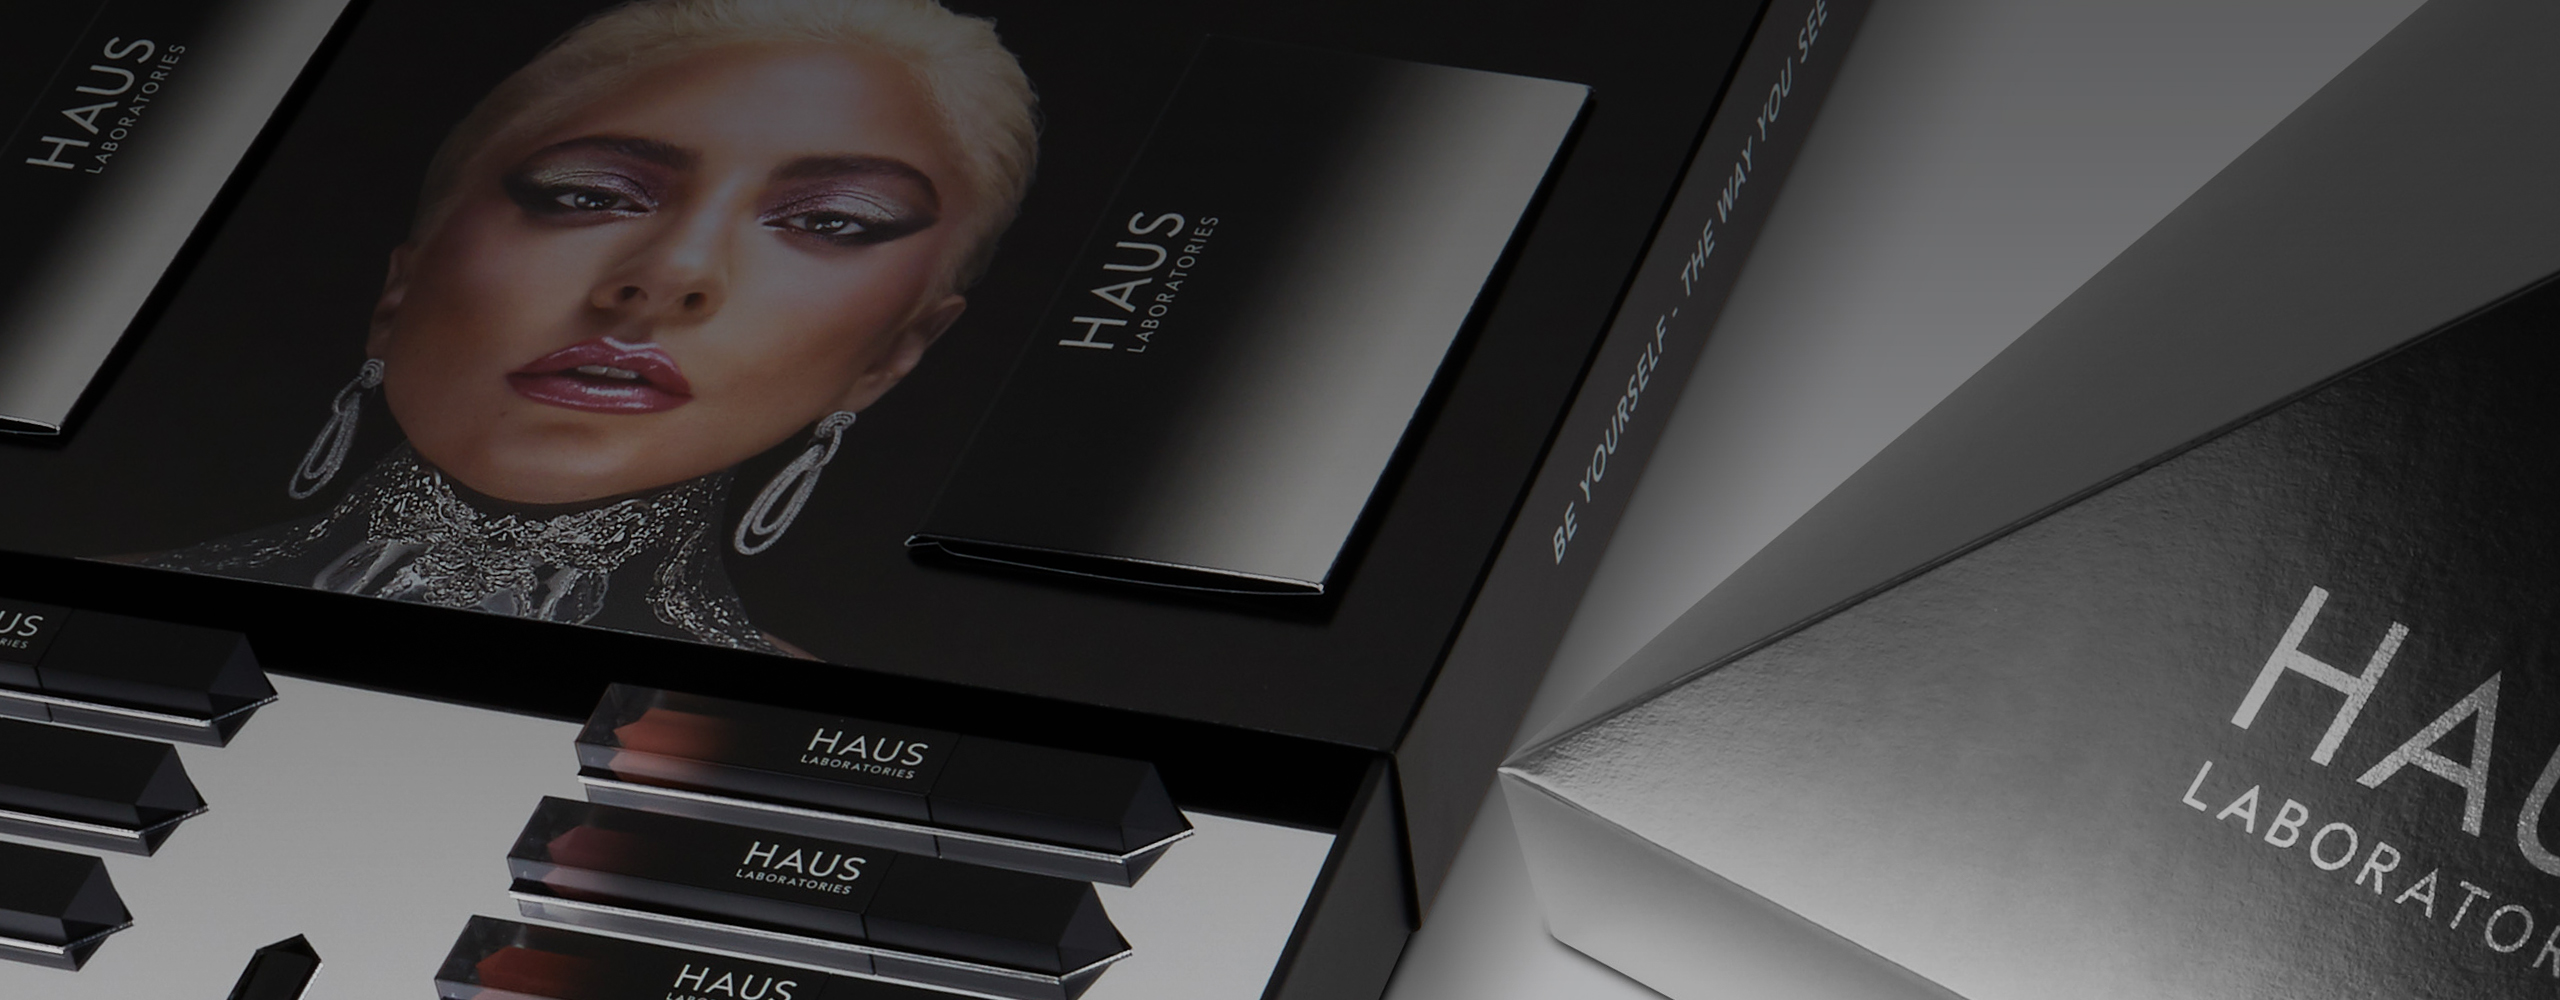 Banner graphics for Haus Laboratories Brand Launch Kit